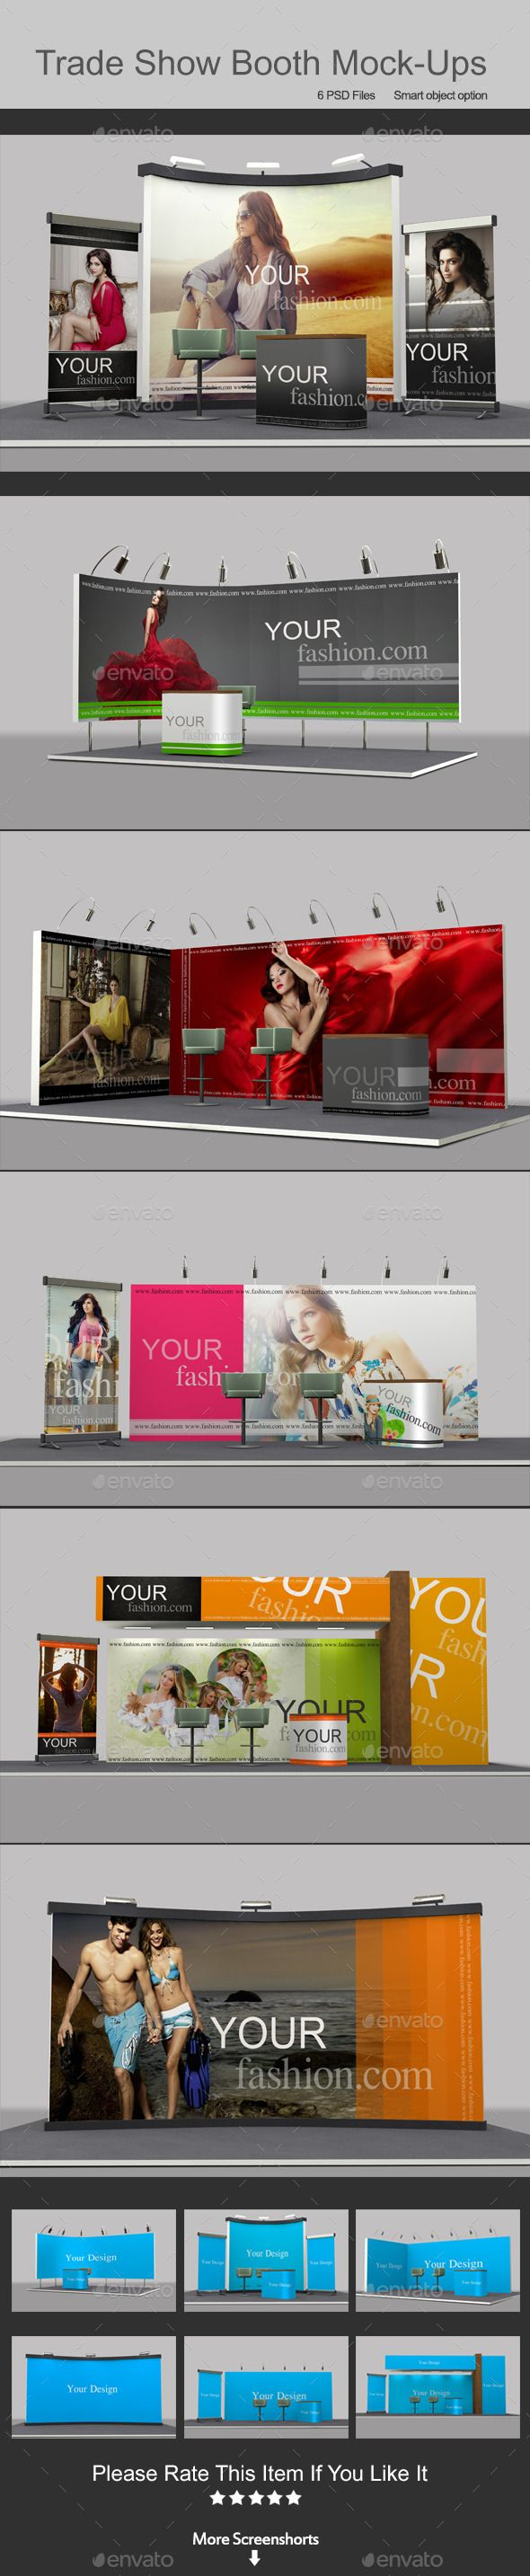 Trade Show Booth Mockups | #tradeshowmockup | Download: http://graphicriver.net/item/trade-show-booth-mockups/9269035?ref=ksioks